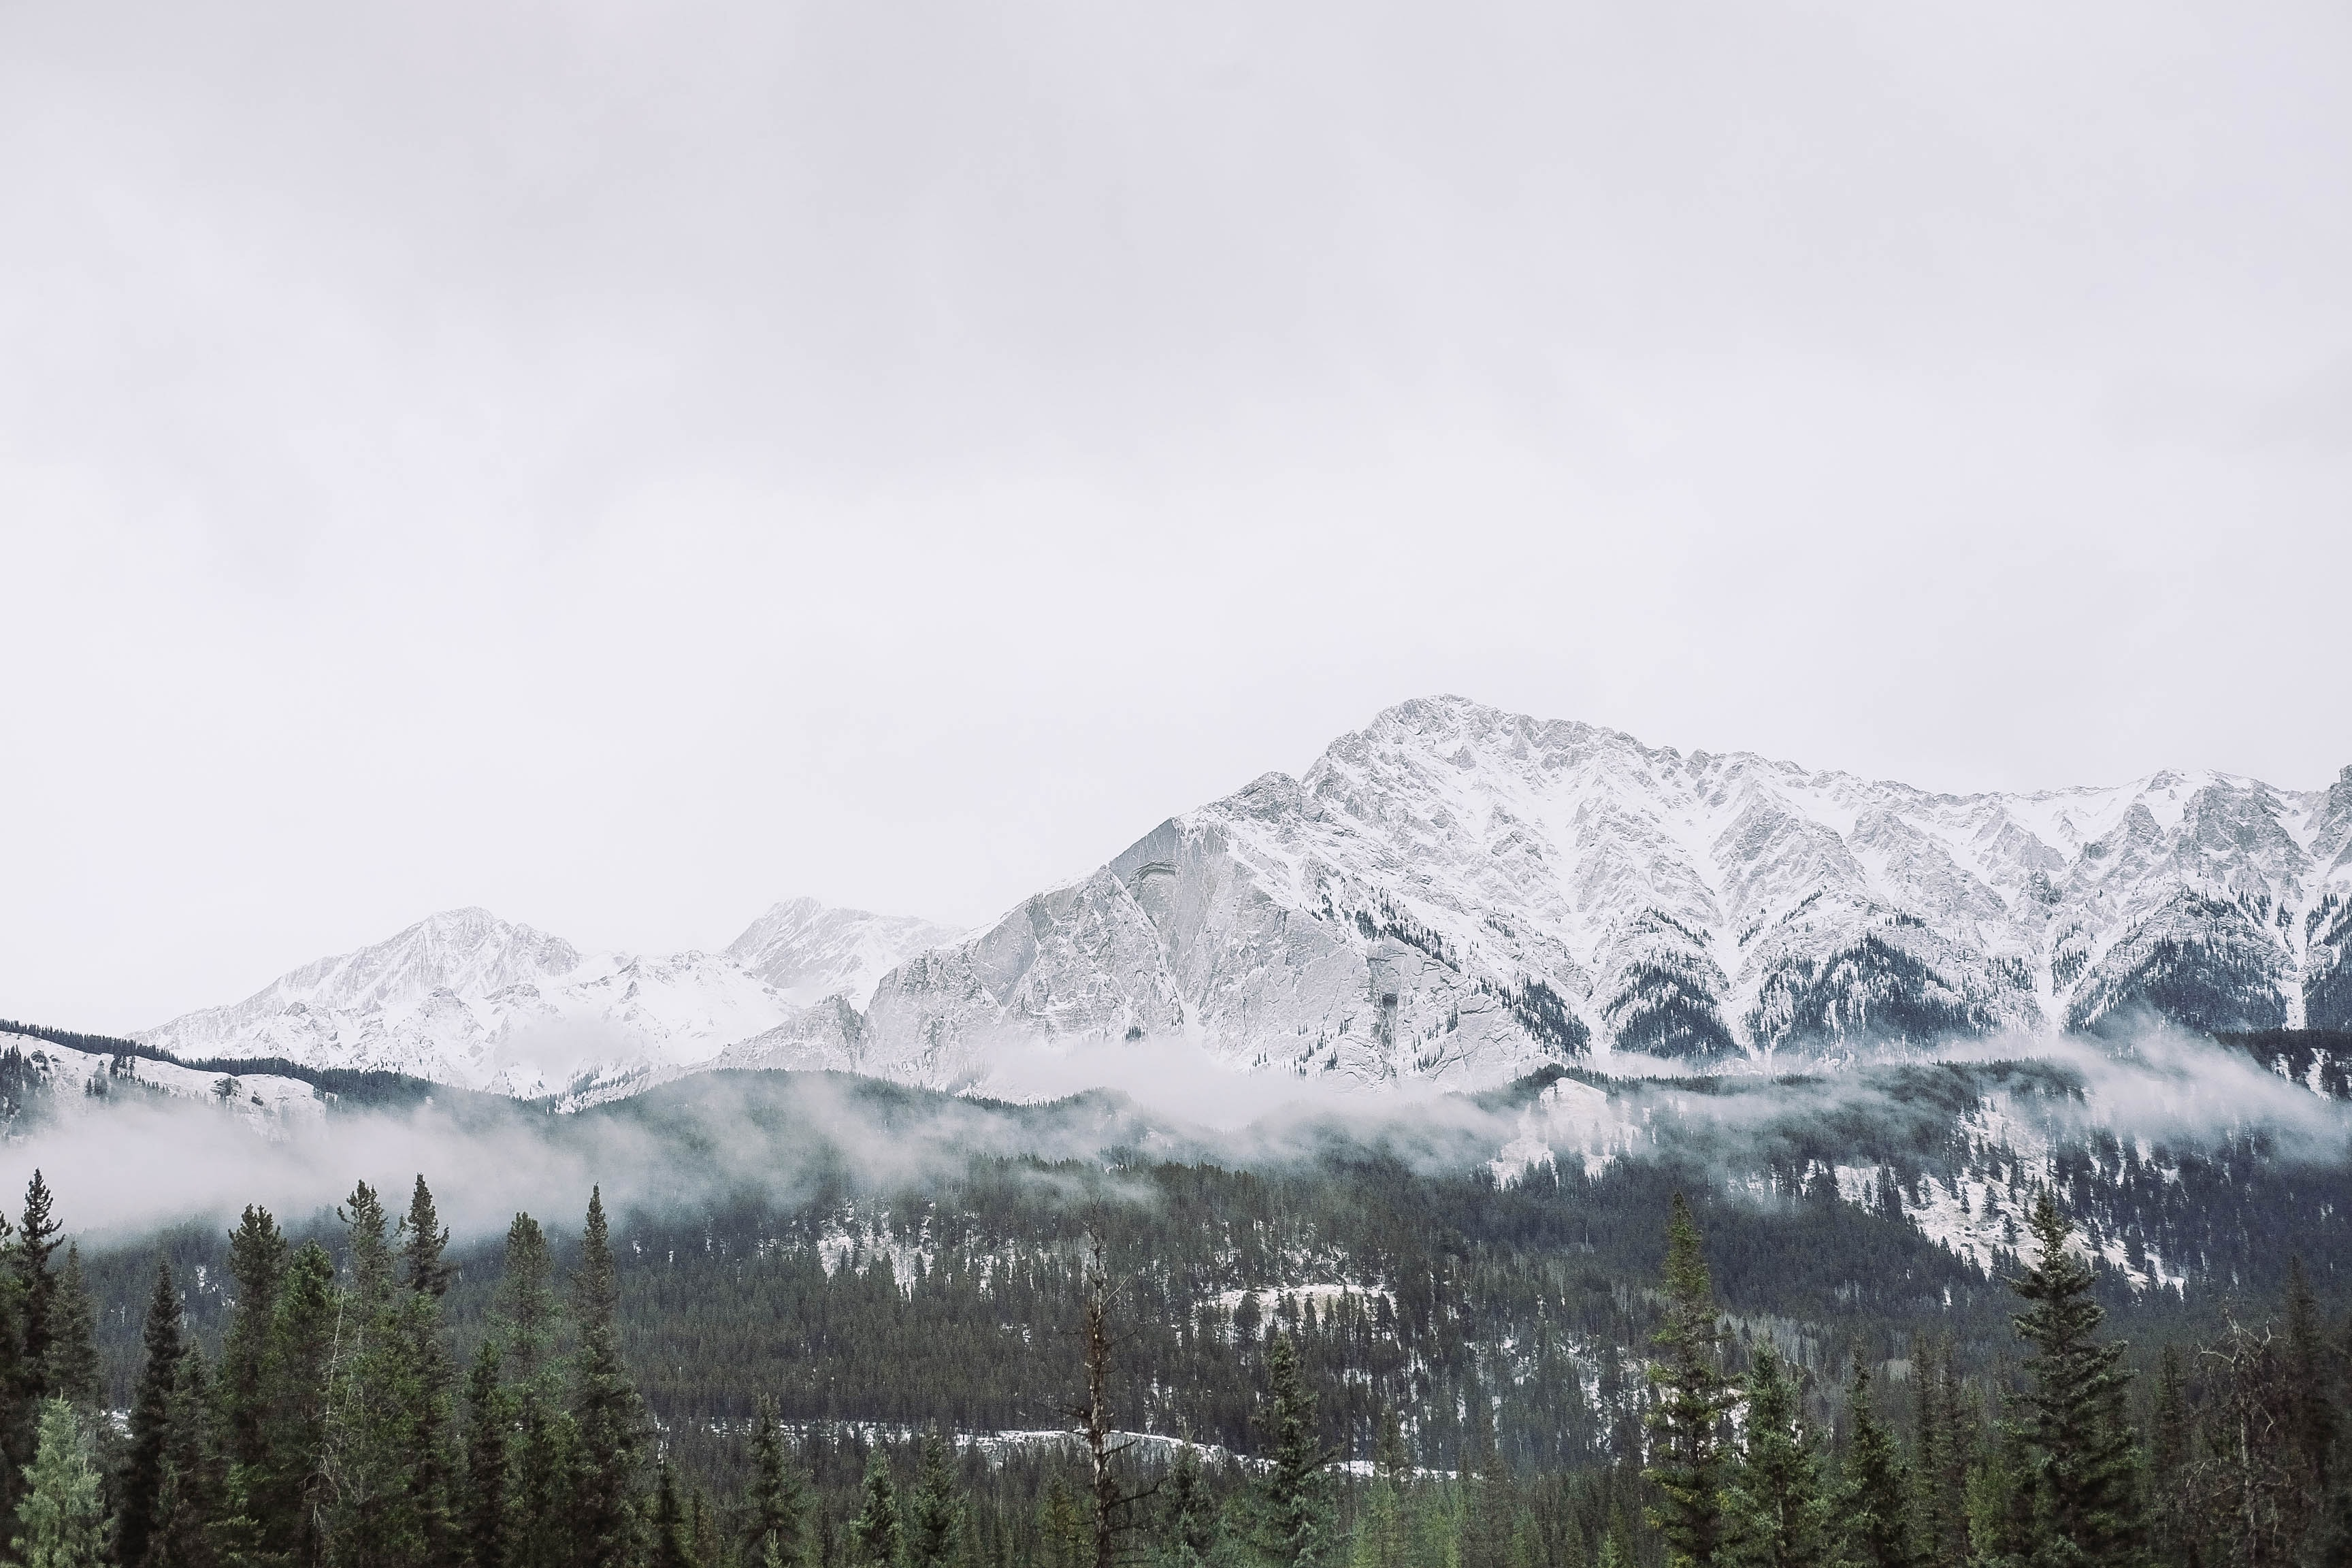 landscape photo of snowy mountain